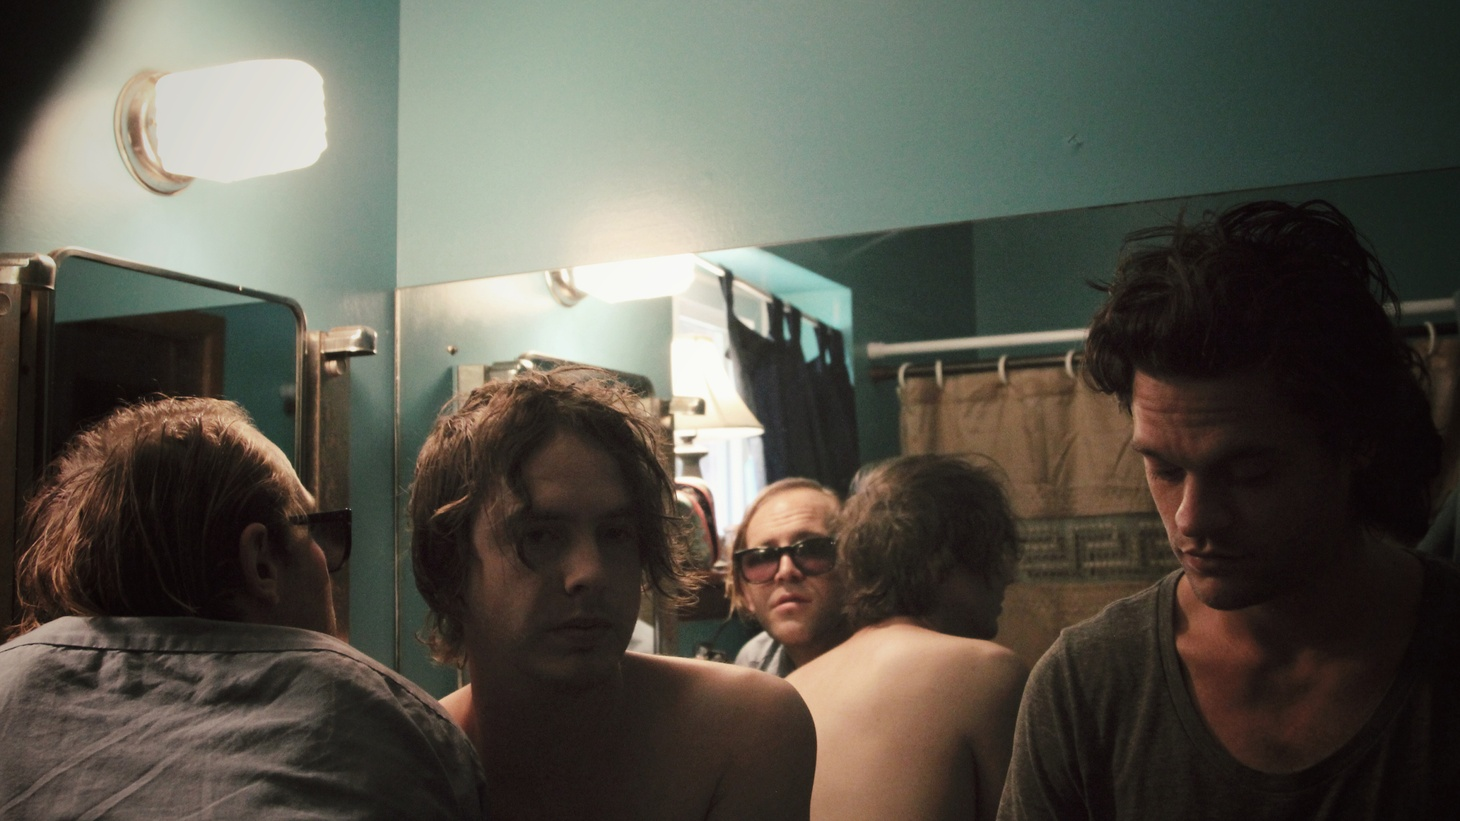 """Oklahoma band Broncho have crafted one of the most infectiously catchy songs of the year. """"Class Historian"""" is a pop gem and we're happy to offer it as Today's Top Tune."""